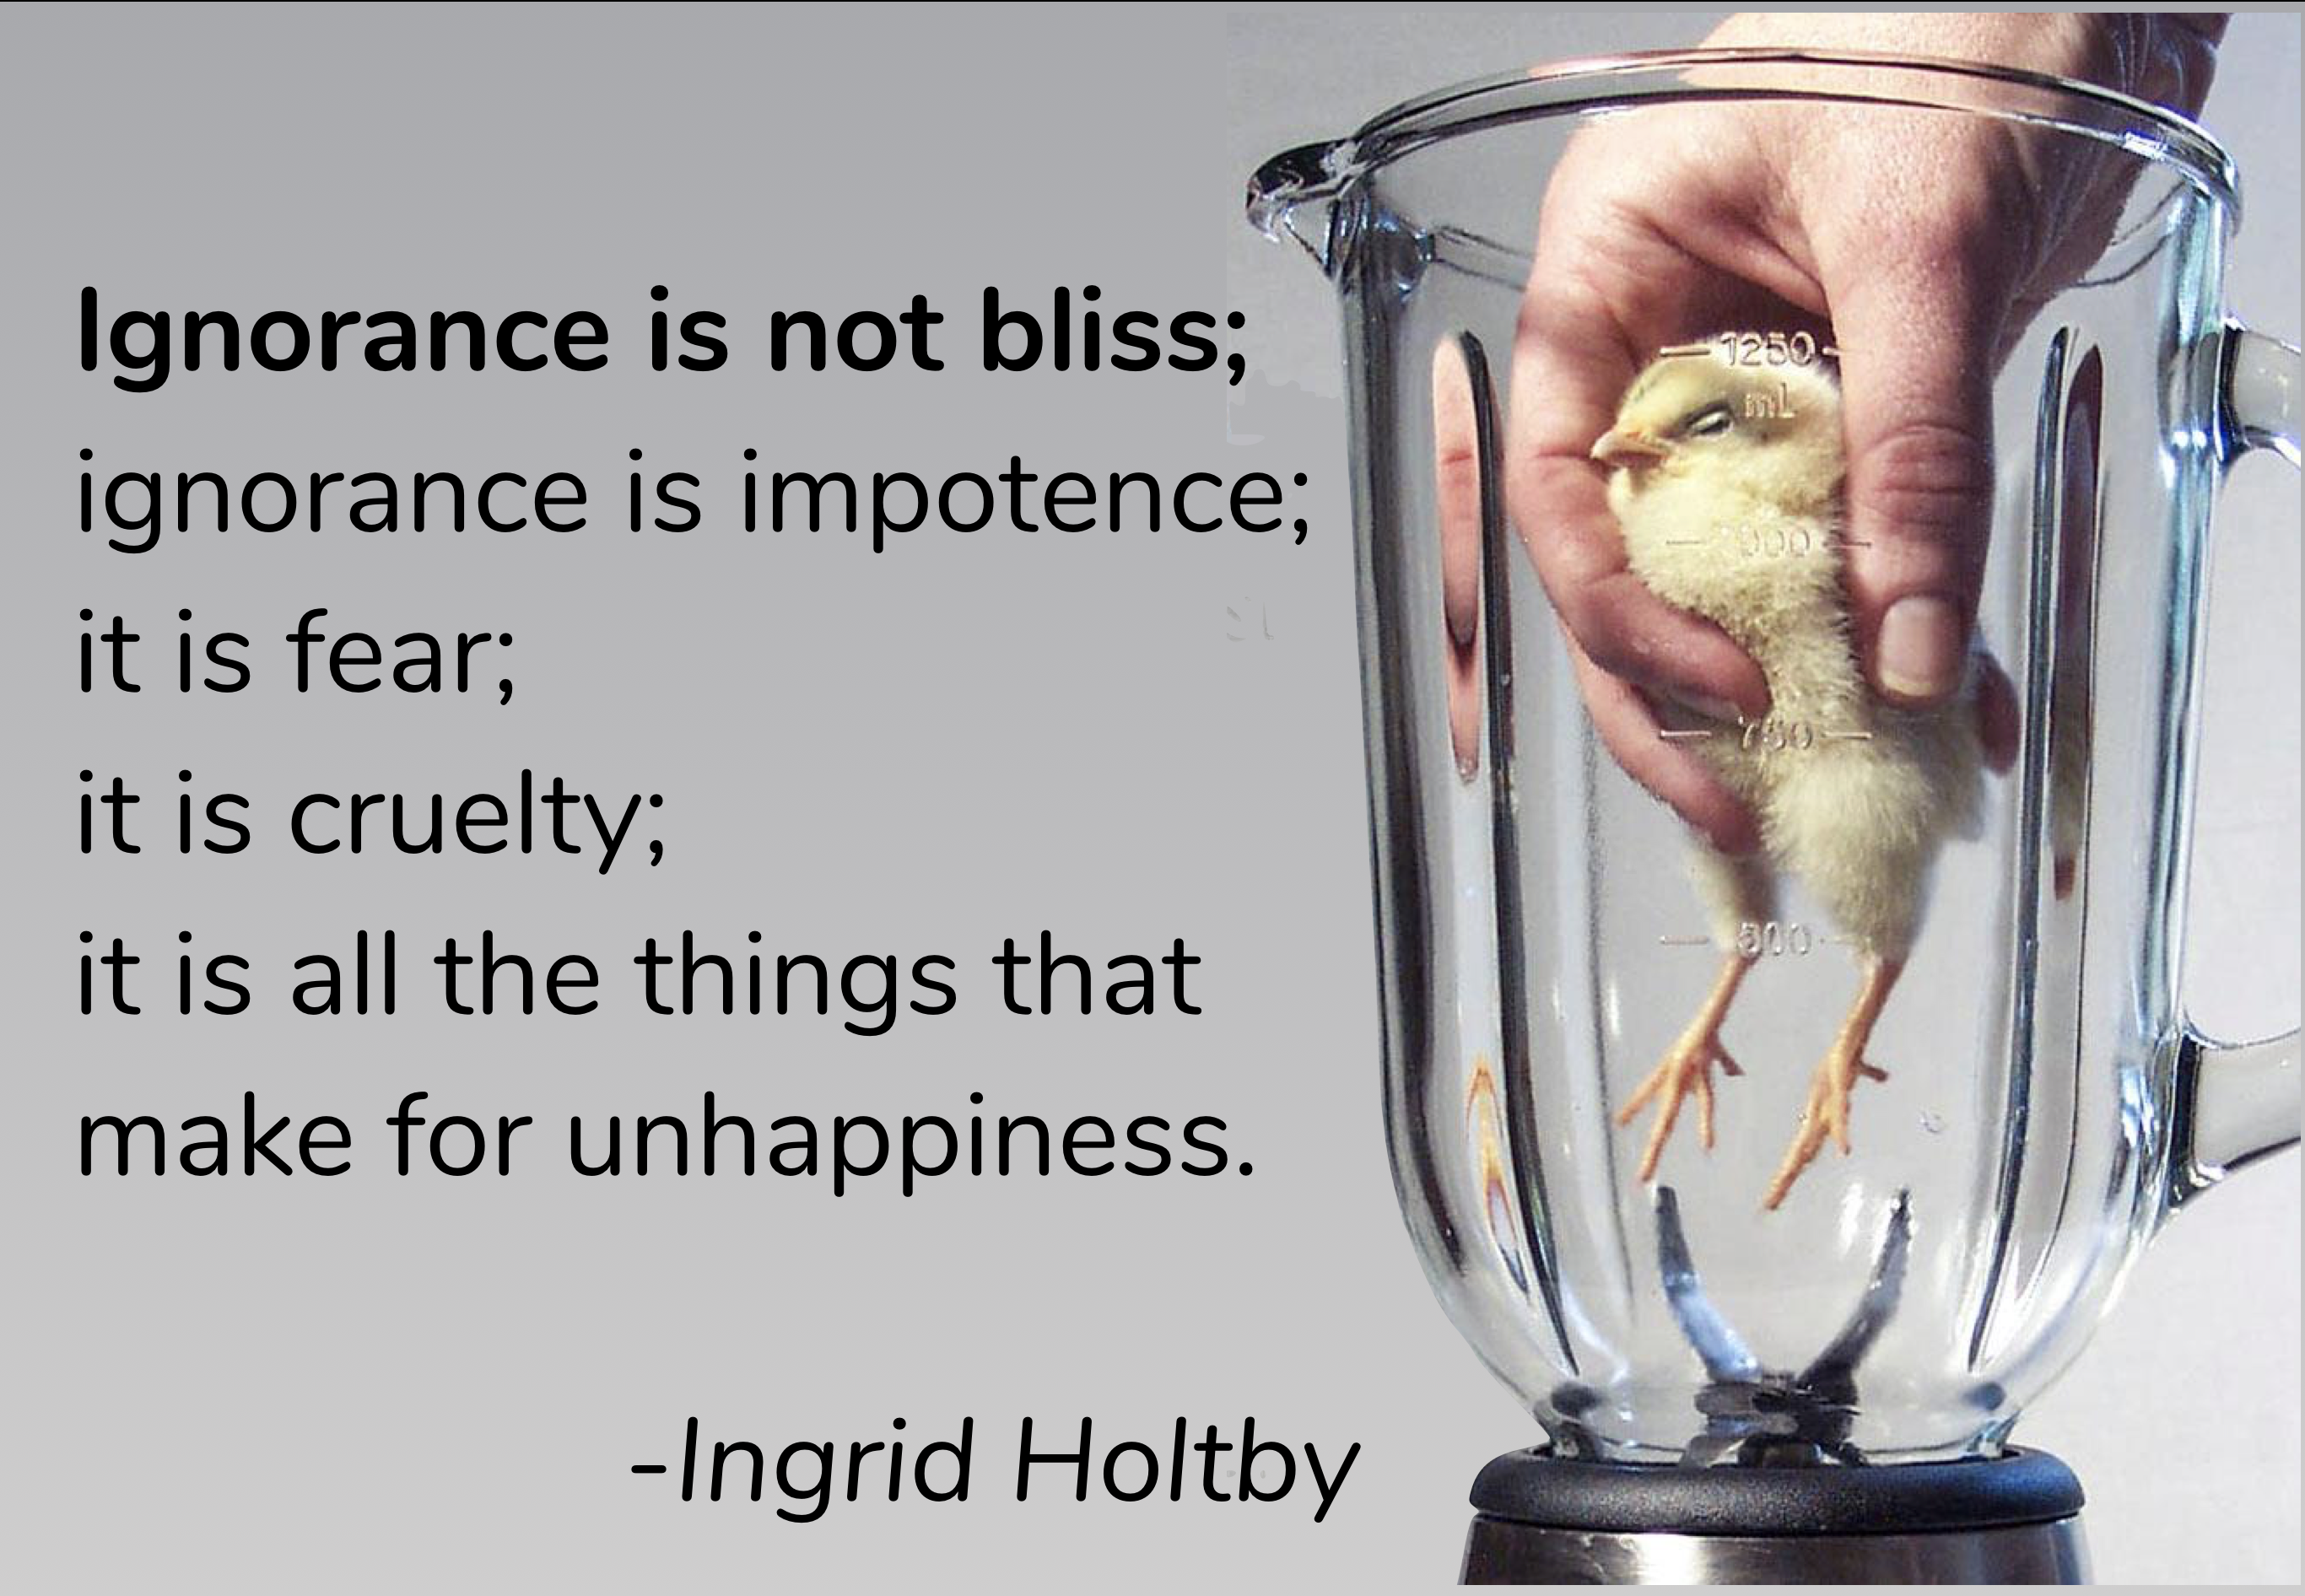 Ignorance is not bliss; ignorance is impotence; it is fear; it is cruelty; it is all the things that make for unhappiness. – Ingrid Holtby [2732 × 1892]